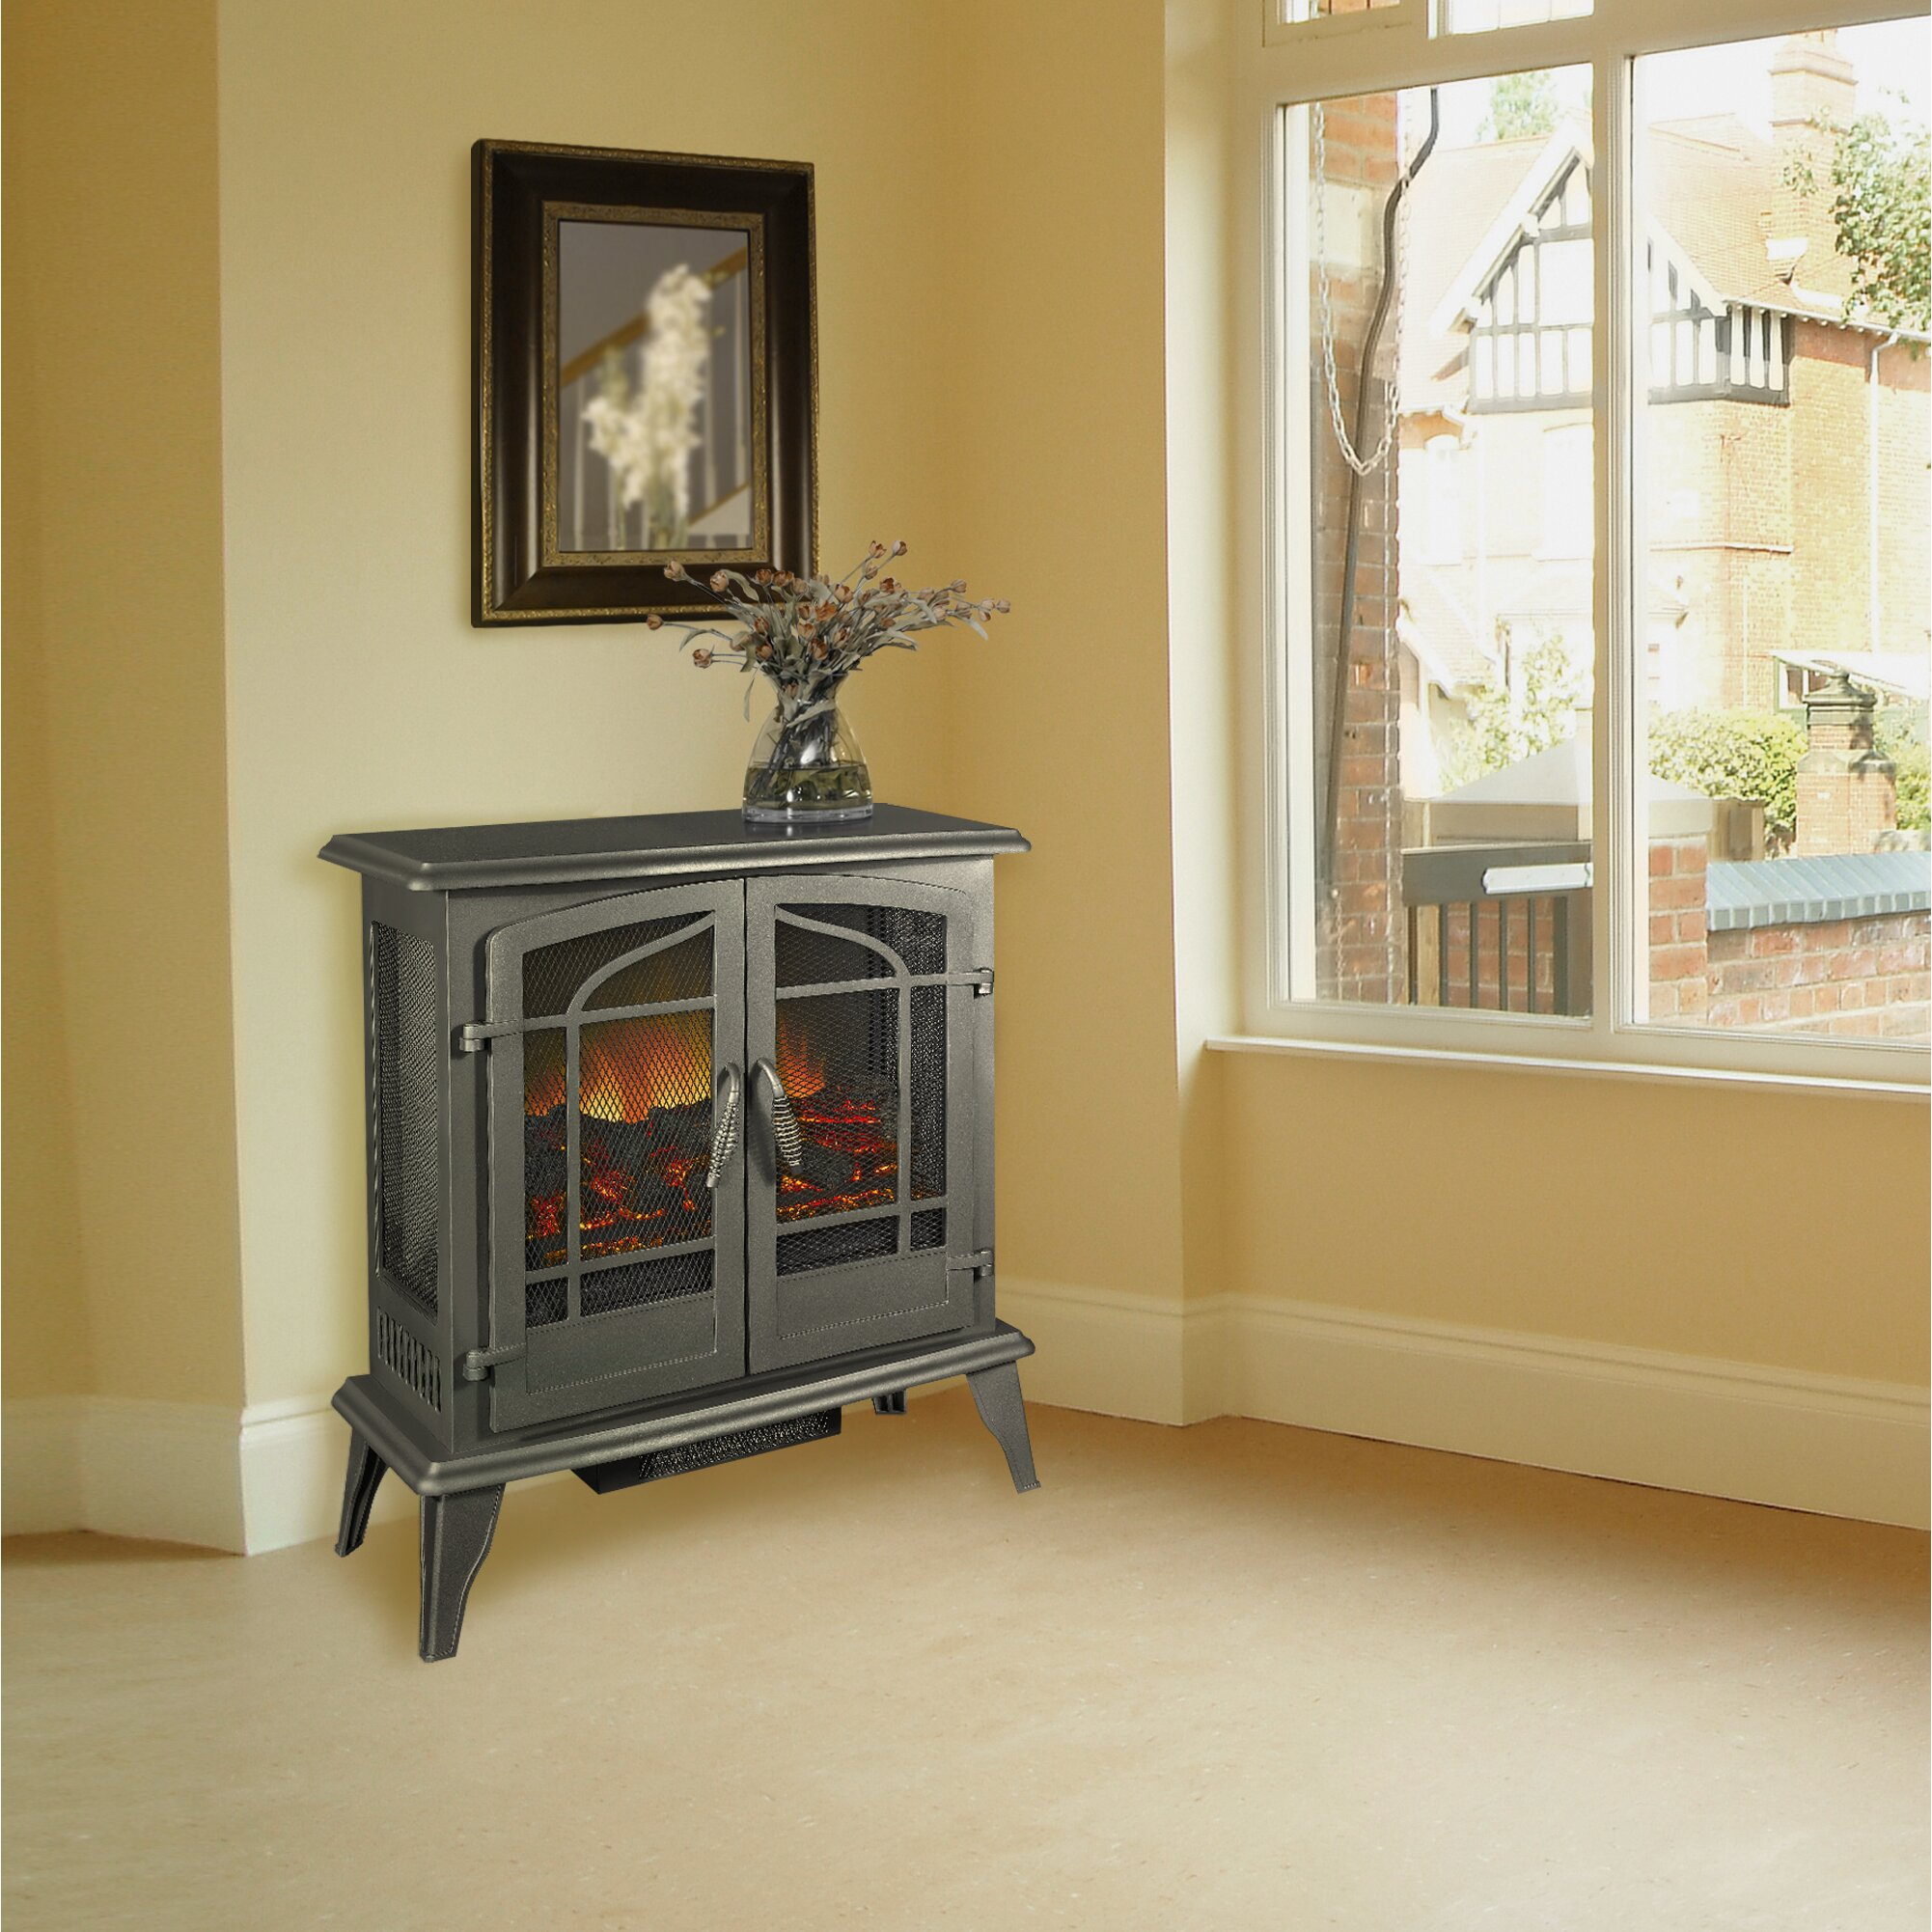 Pleasant Hearth: Pleasant Hearth 400 Square Foot Panoramic View Stove